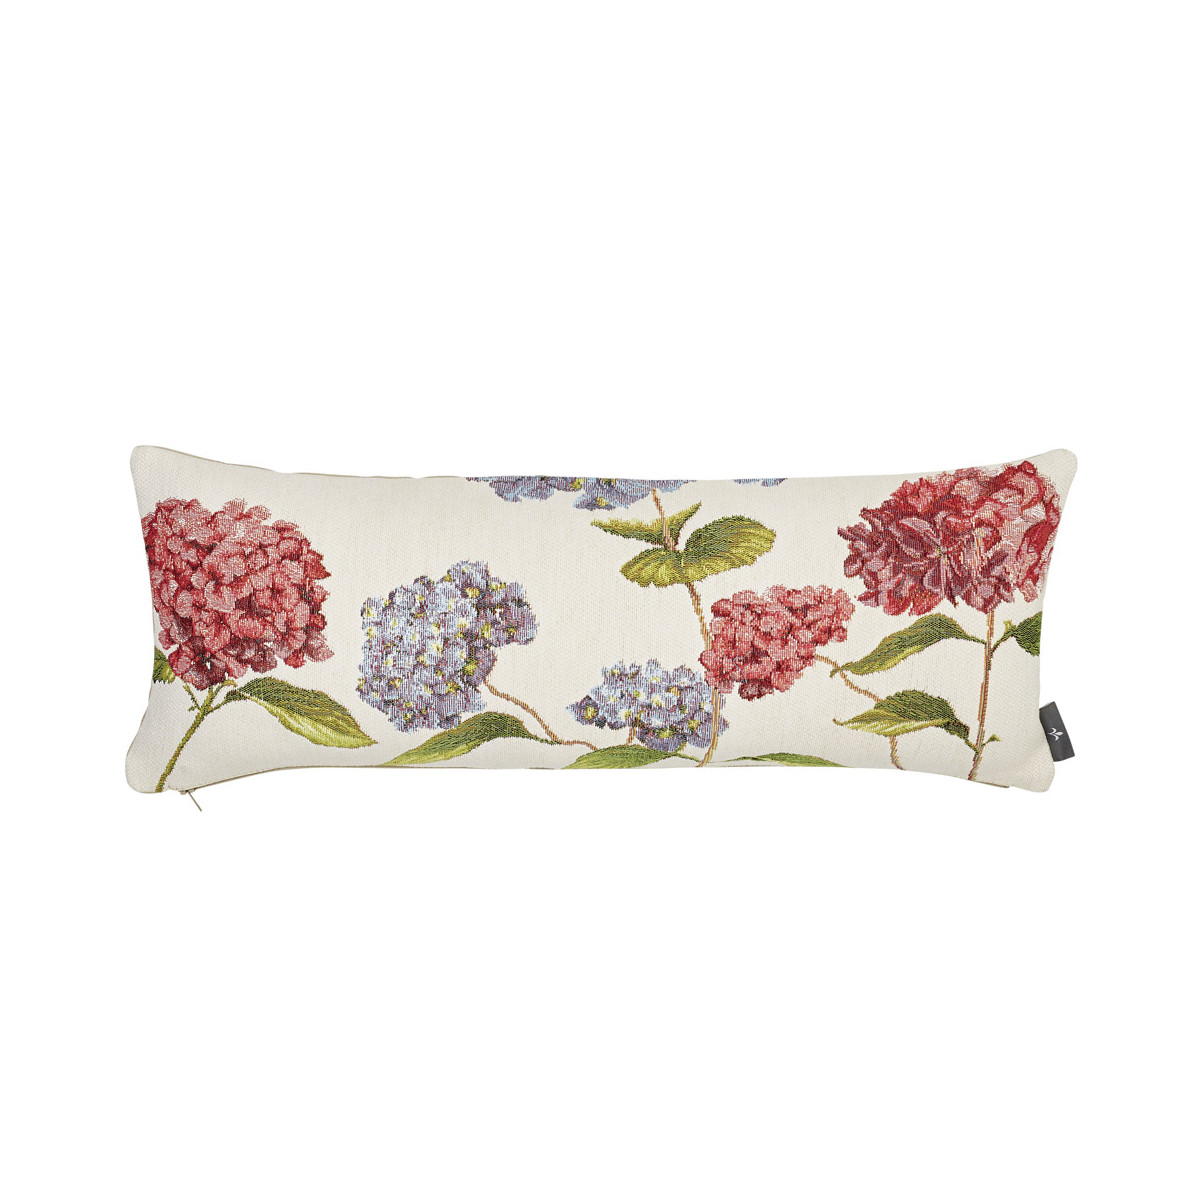 Coussin tapisserie hortensias made in france blanc 25x60